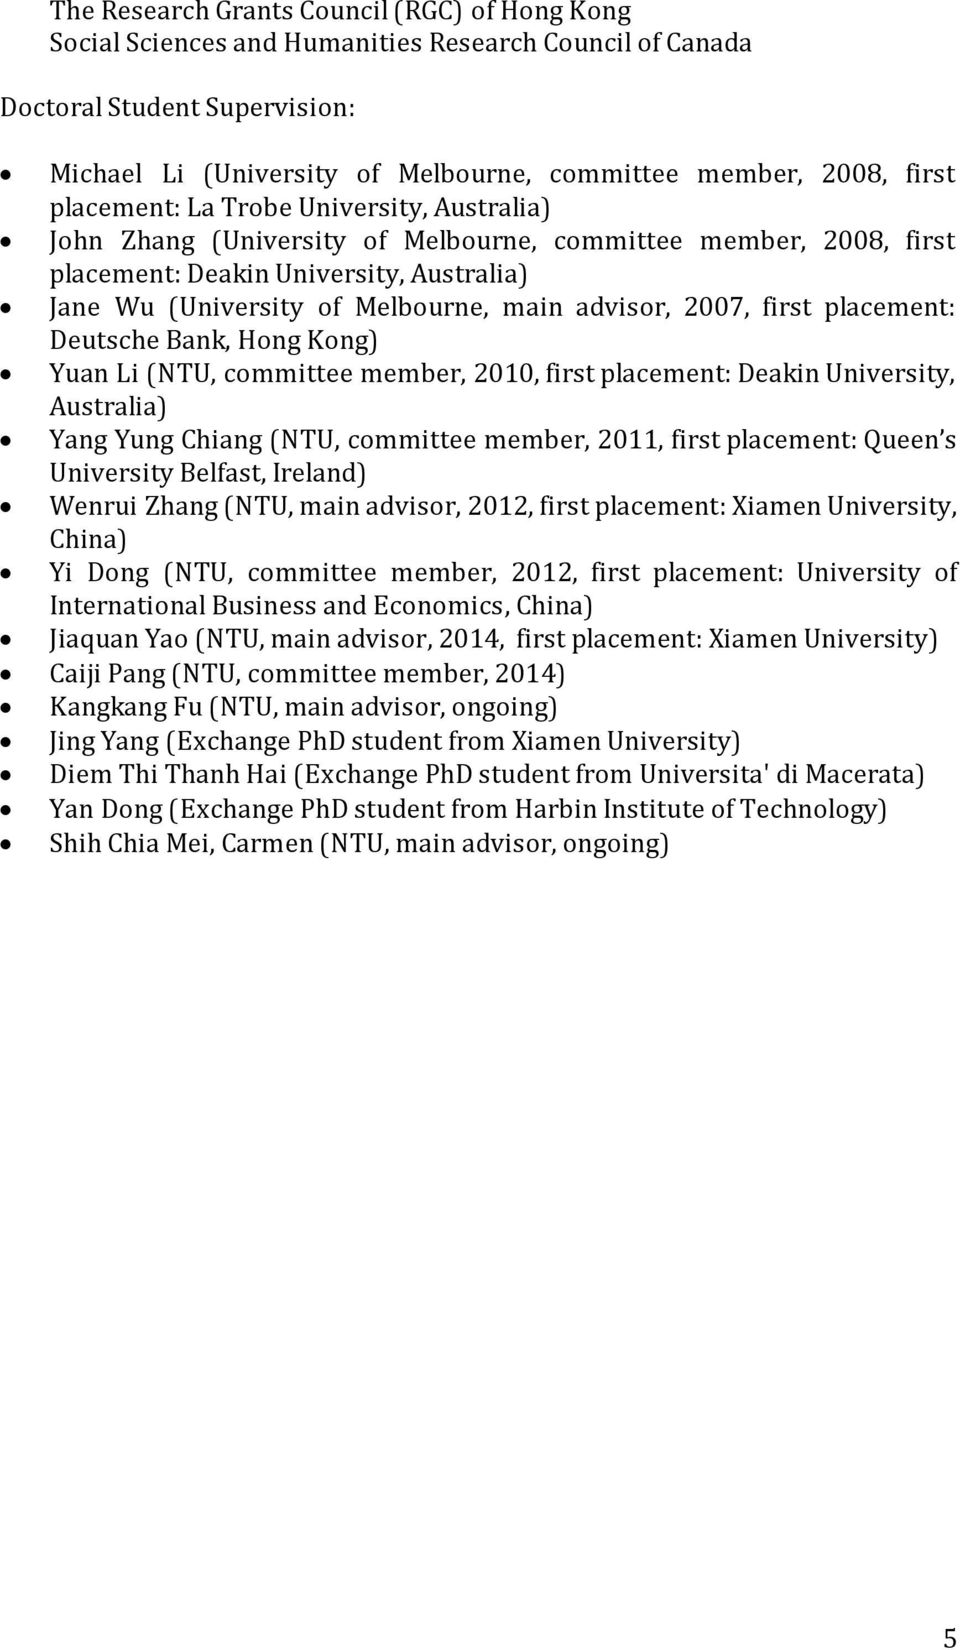 advisor, 2007, first placement: Deutsche Bank, Hong Kong) Yuan Li (NTU, committee member, 2010, first placement: Deakin University, Australia) Yang Yung Chiang (NTU, committee member, 2011, first